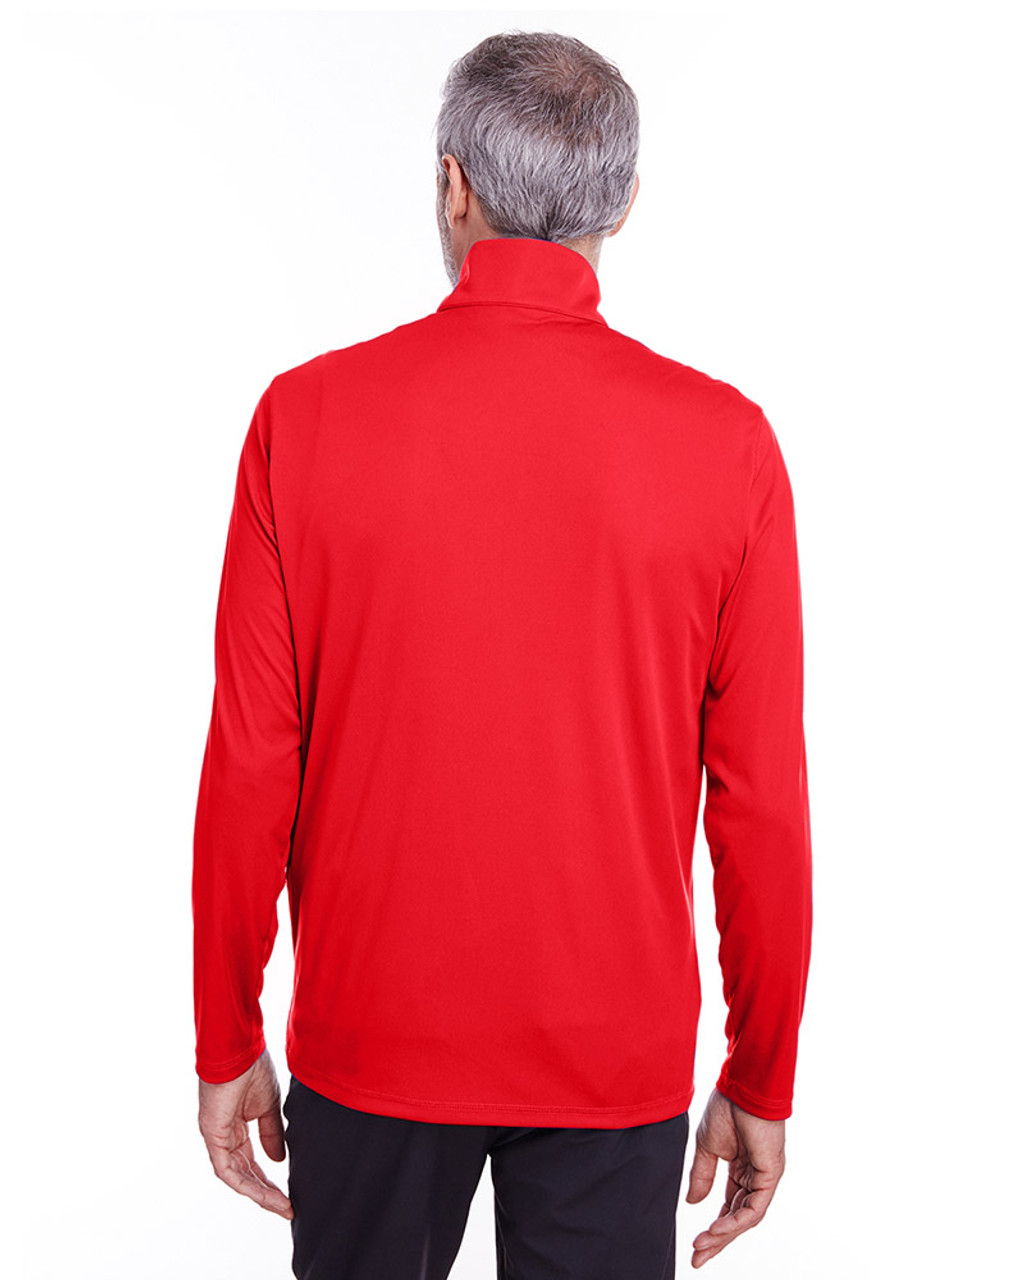 High Risk Red - back, 596807 Puma Golf Men's Icon Quarter-Zip Shirt | Blankclothing.ca